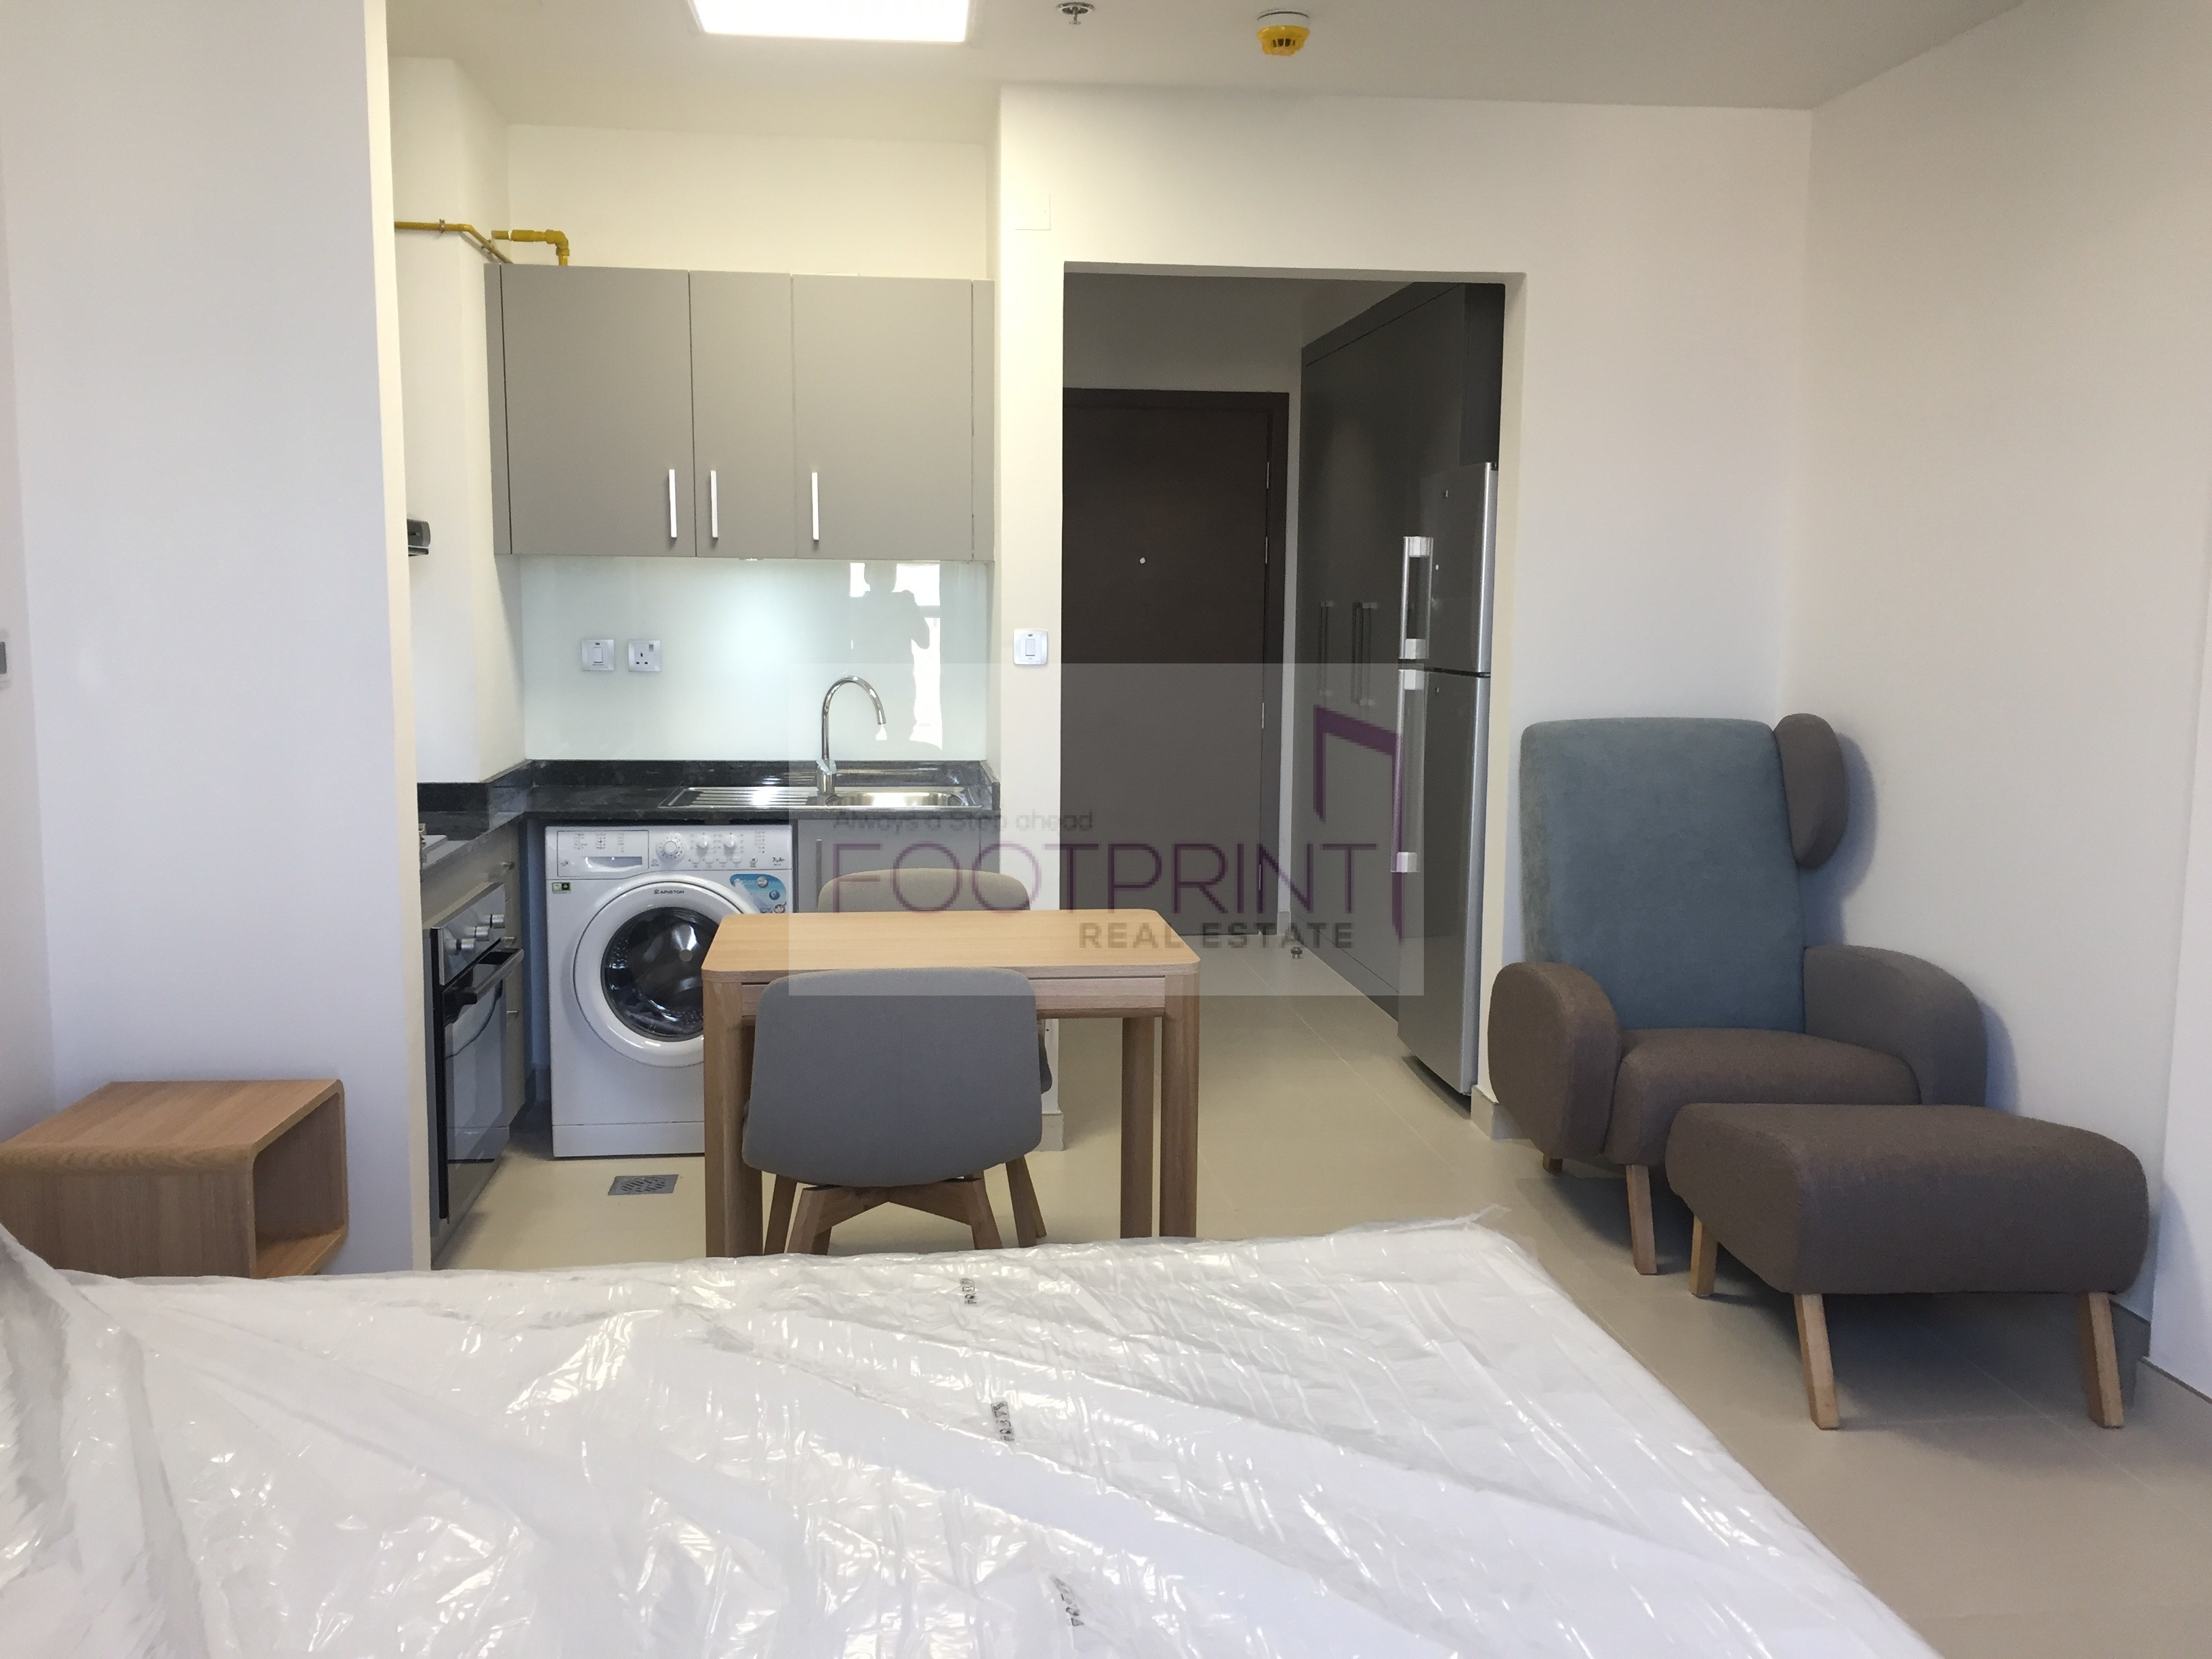 Studio, Furnished Brand New, 12 Payments